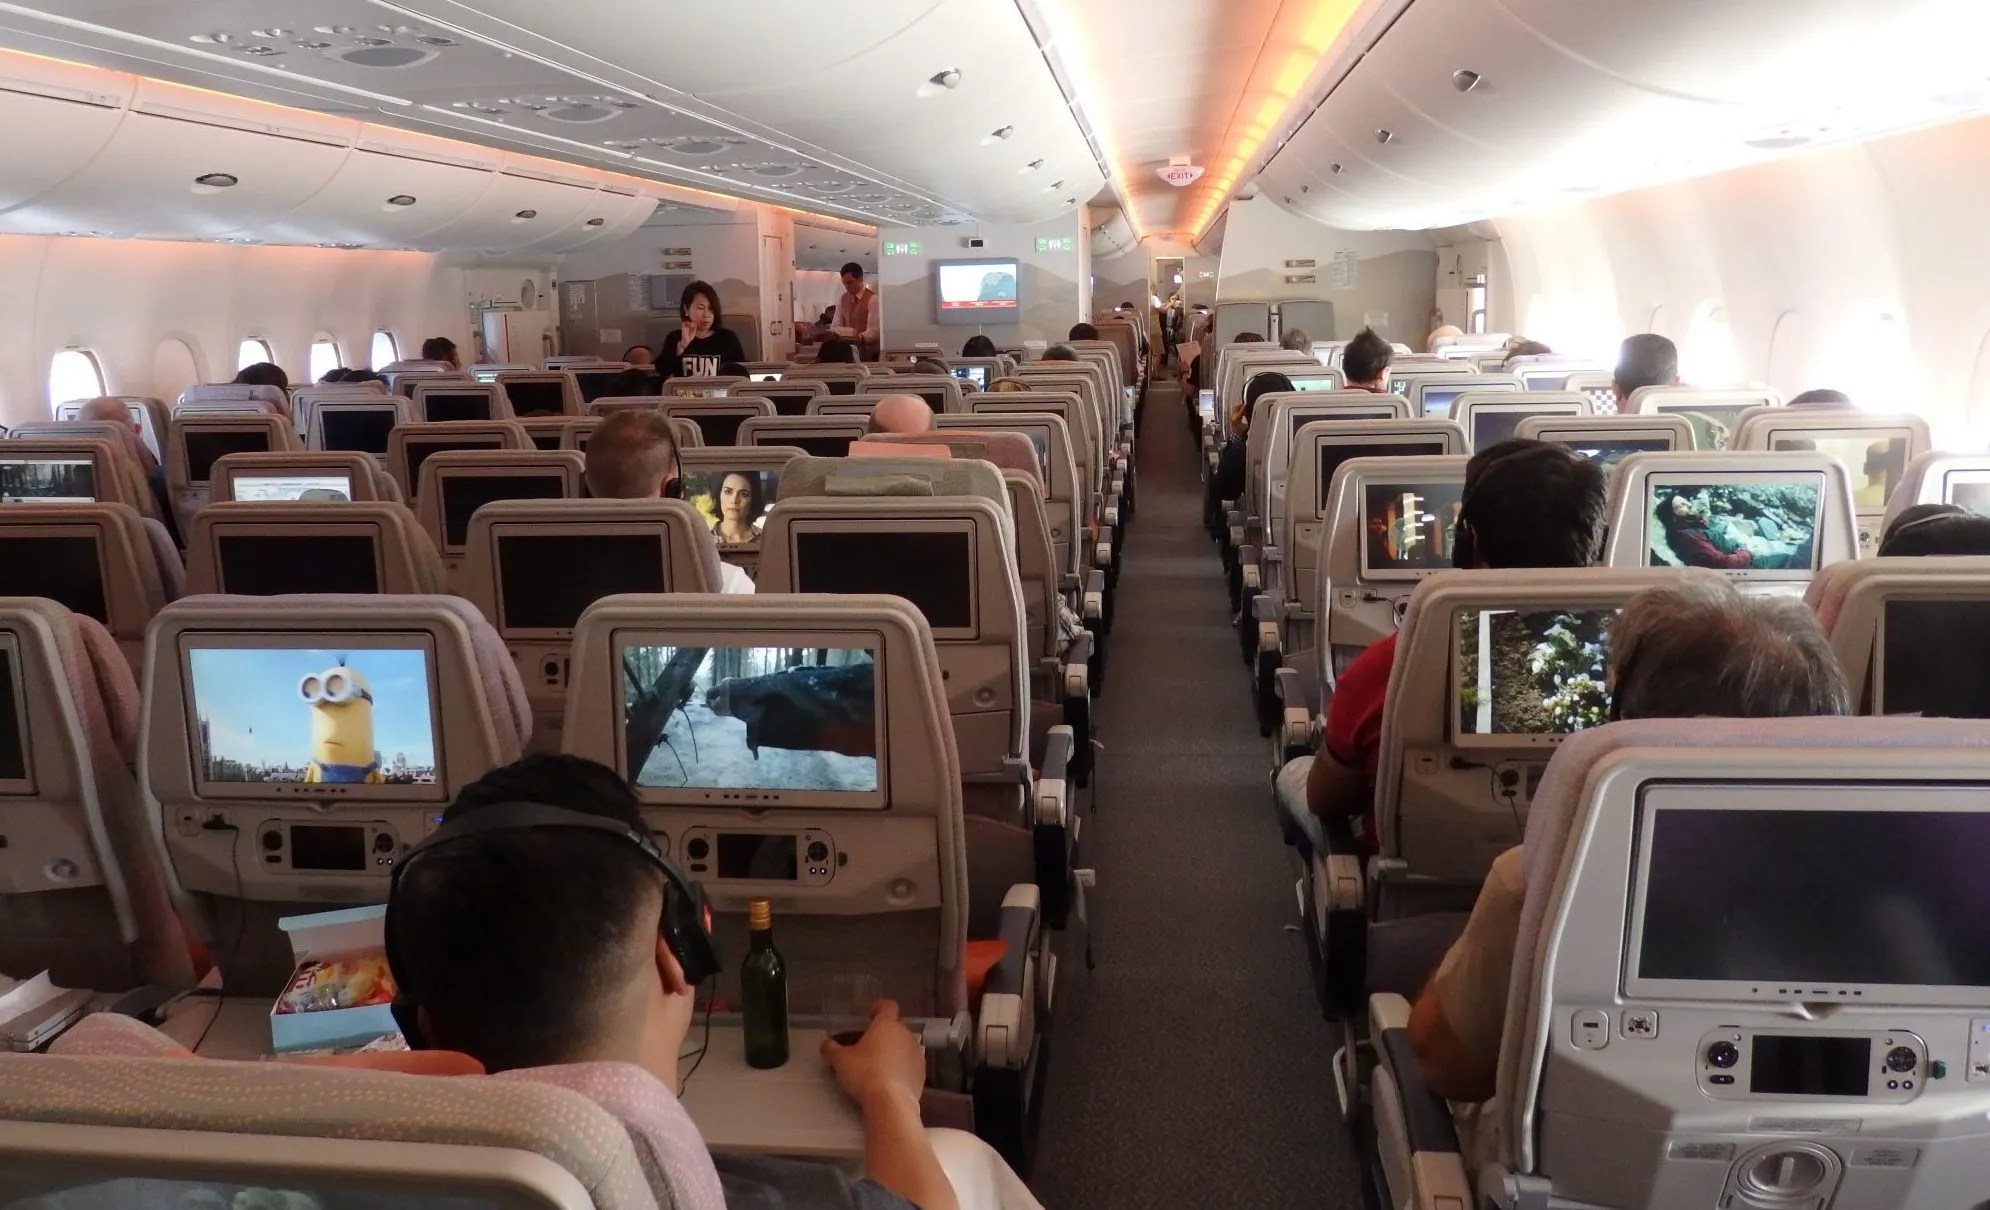 a view down the length of the Emirates A380. You can see the seatback screens here too.